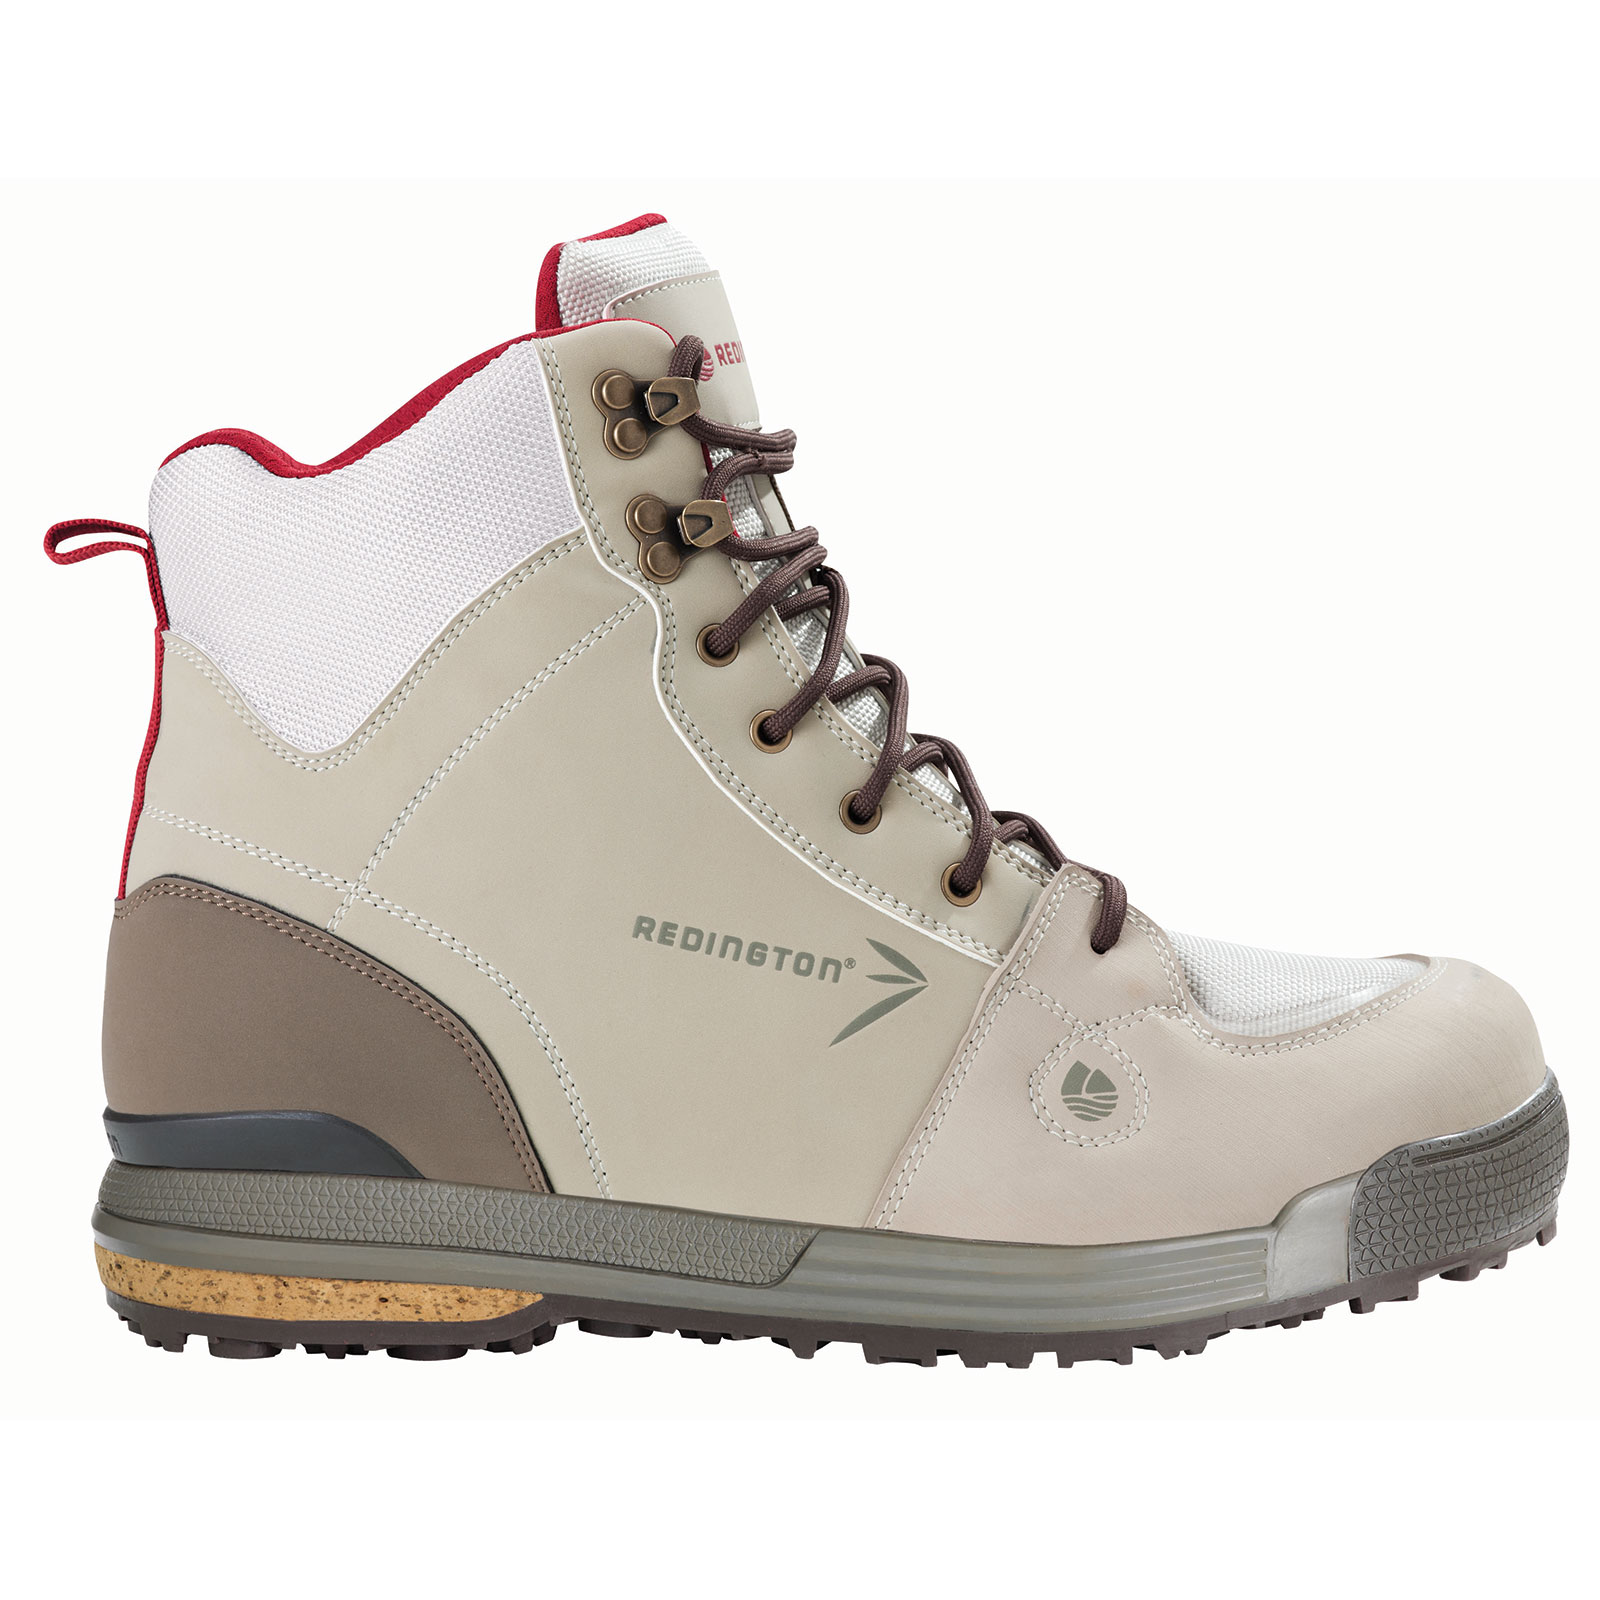 Redington Siren Womens Fly Fishing Wading Boots-Sticky Rubber Sole All Sizes by